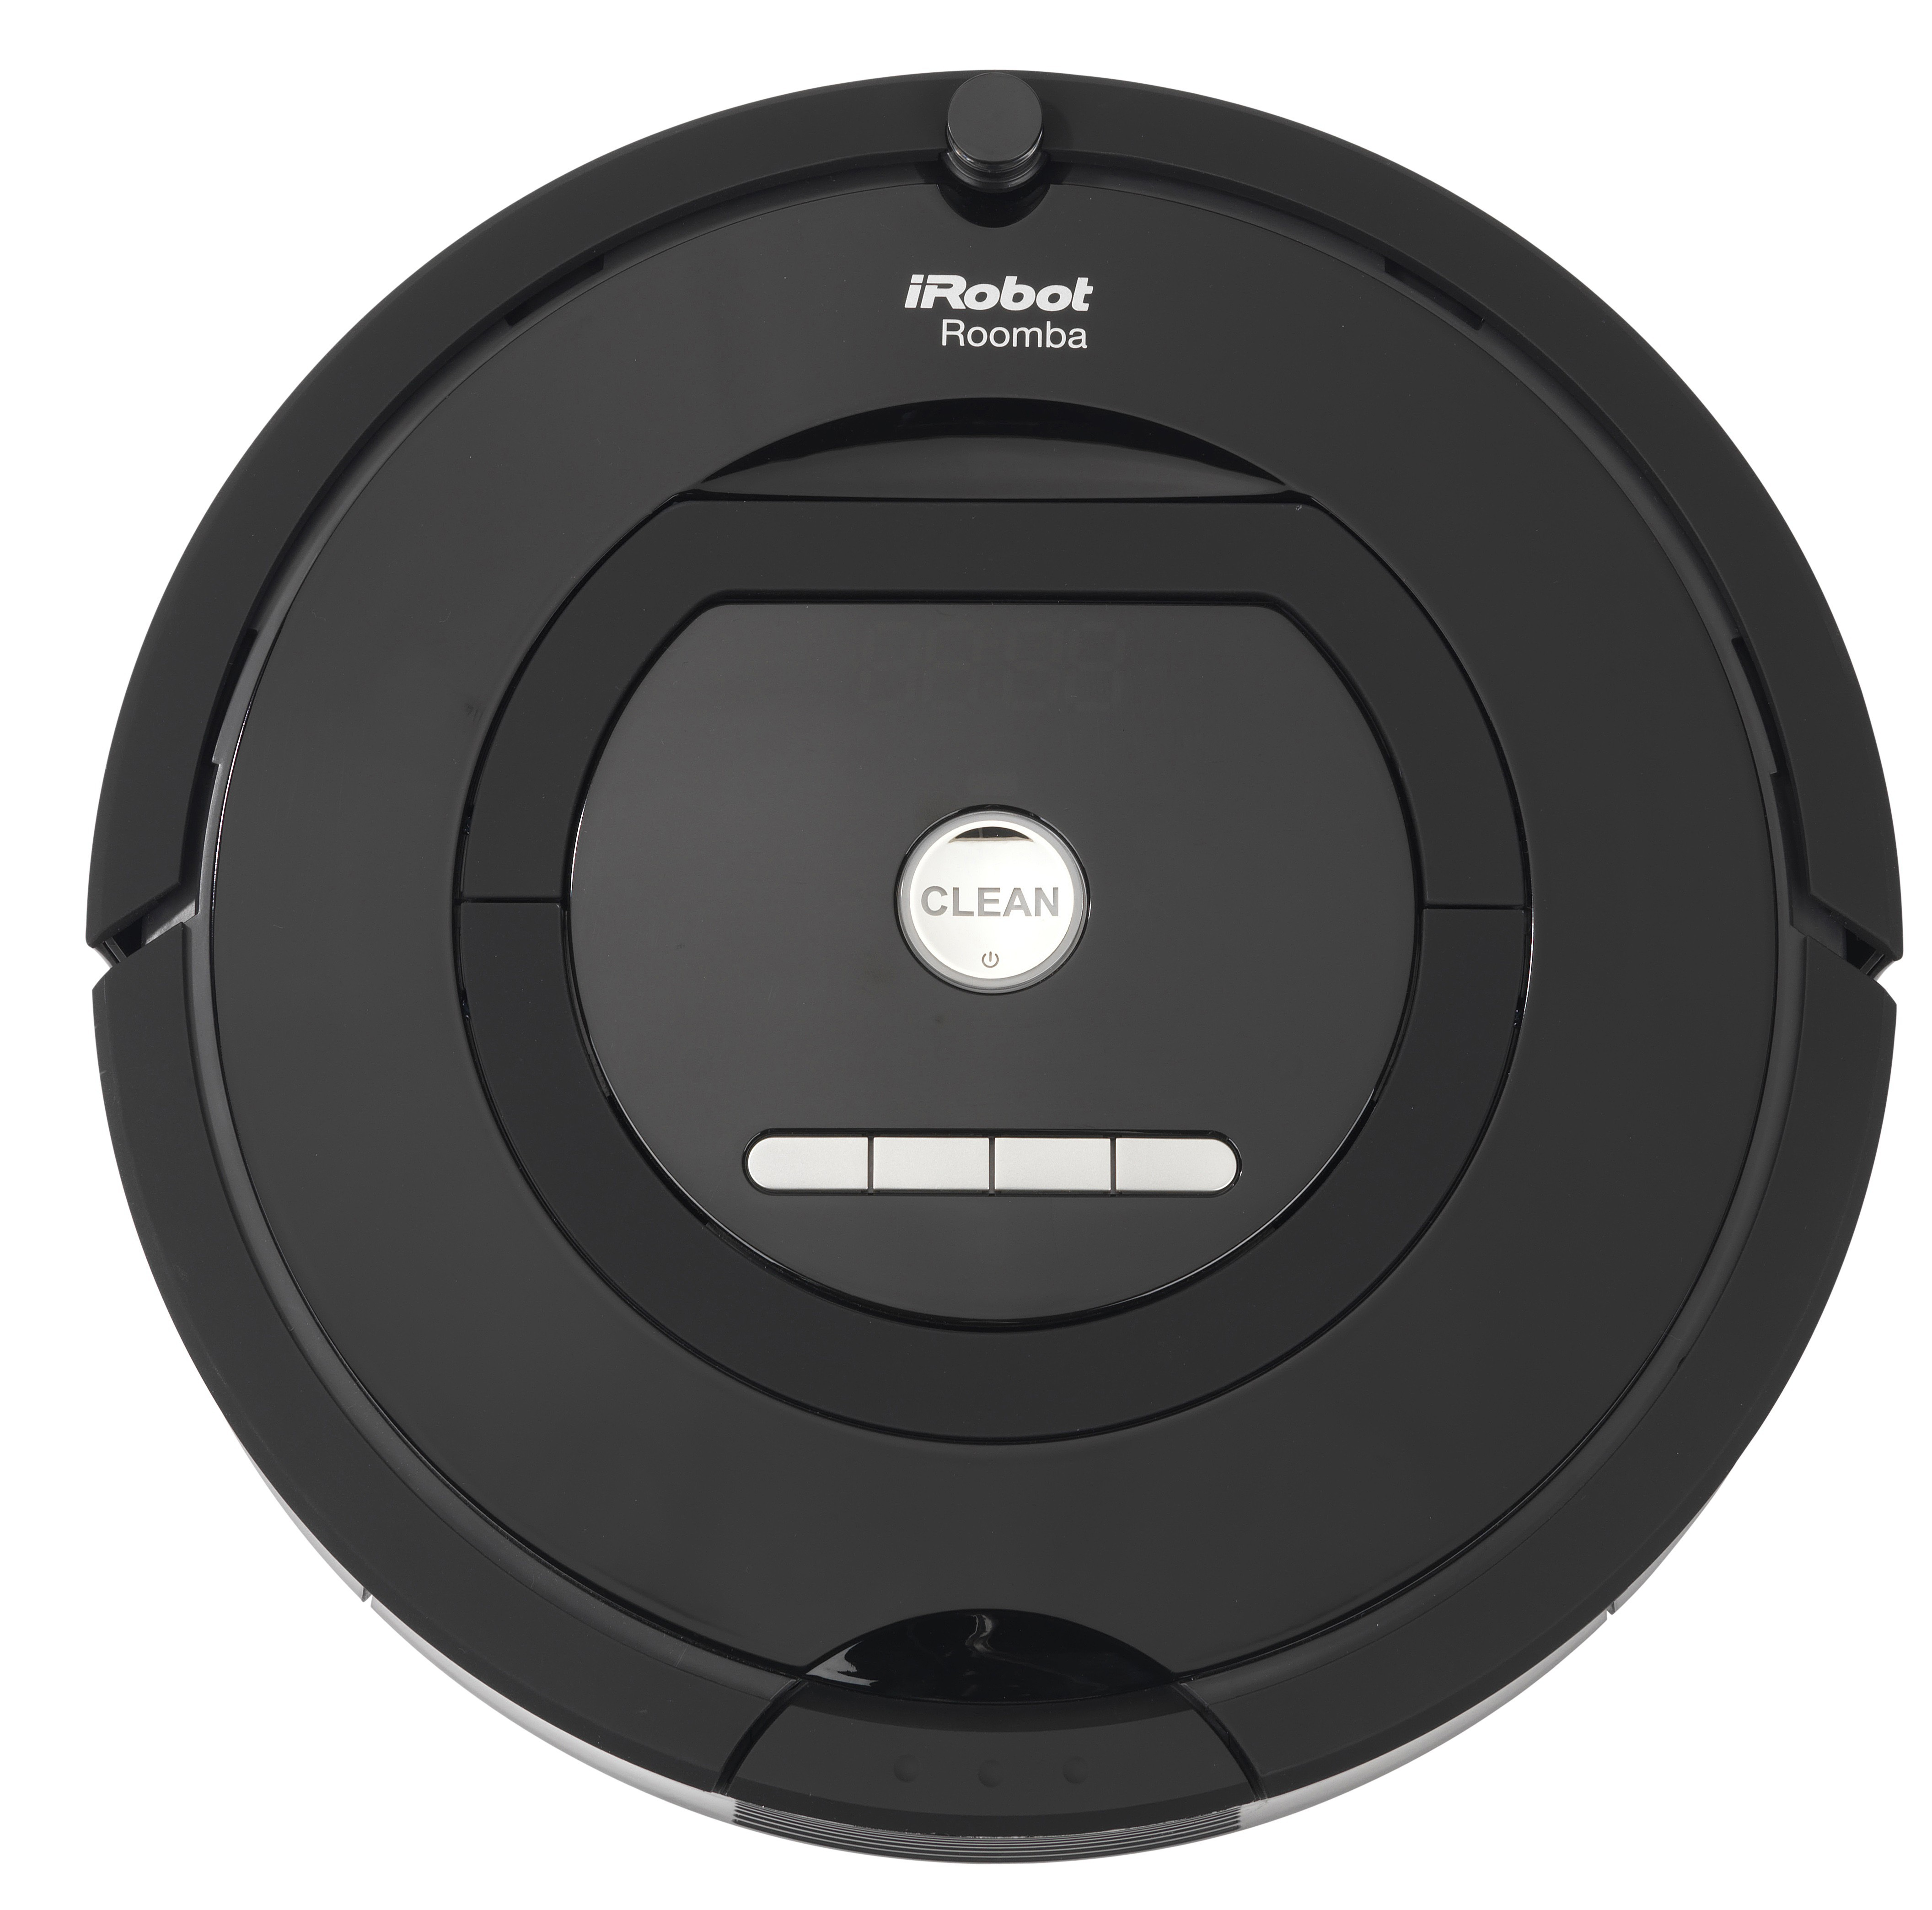 Irobot Roomba Reviews In Household Cleaning Products